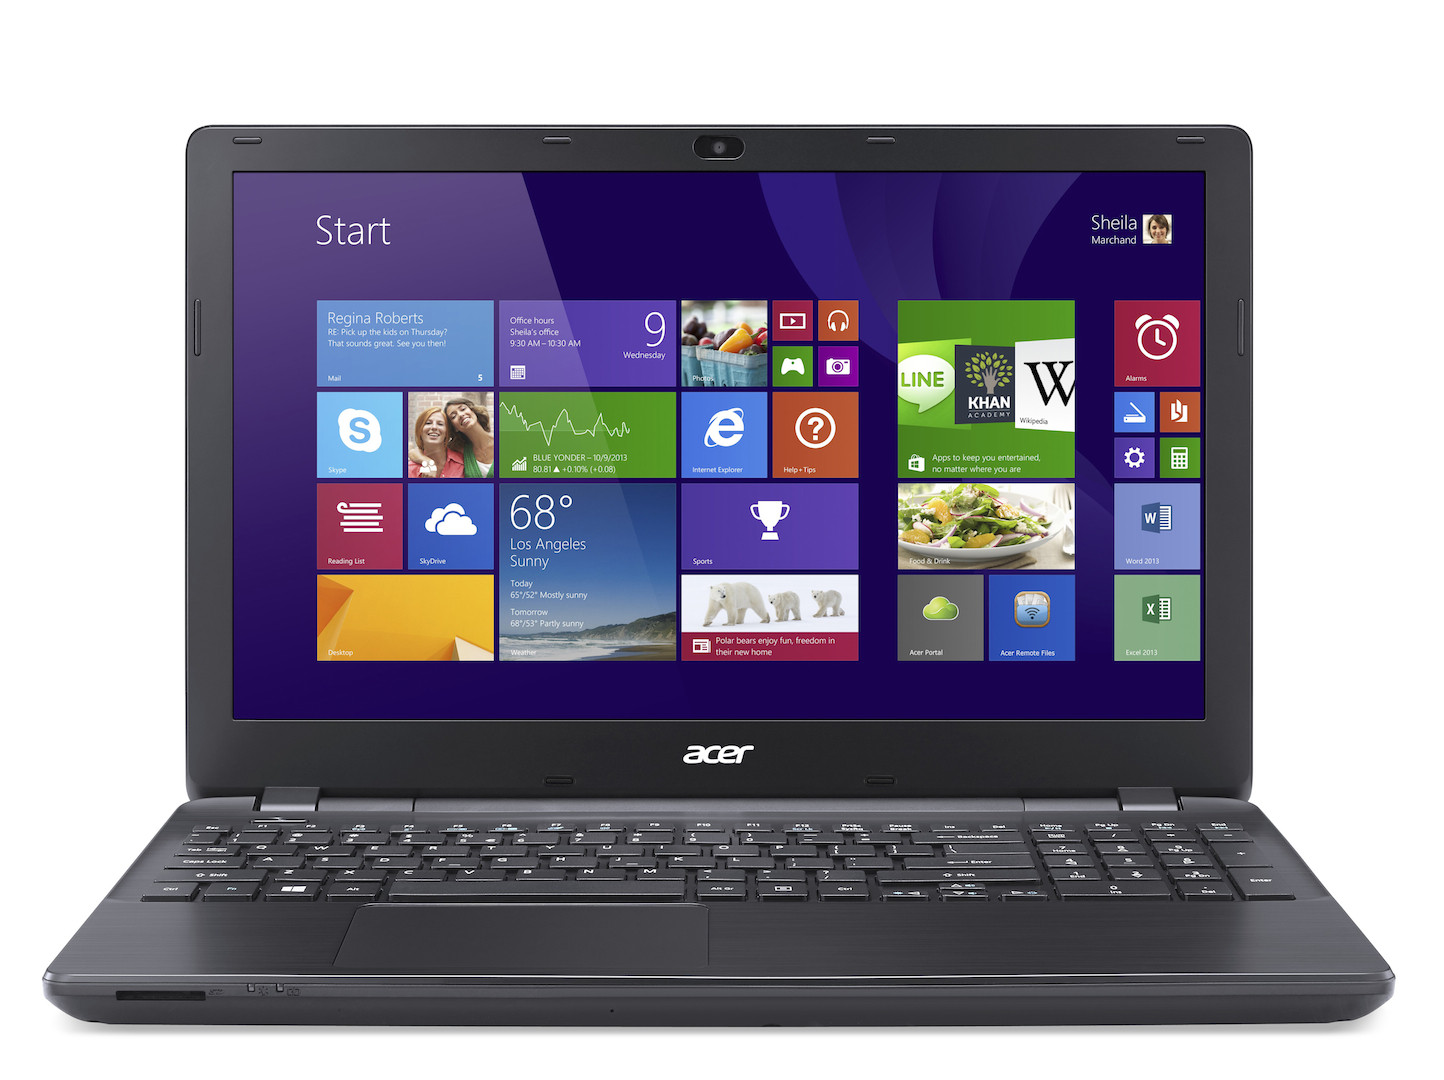 ACER EXTENSA 2509 DRIVERS FOR WINDOWS 10